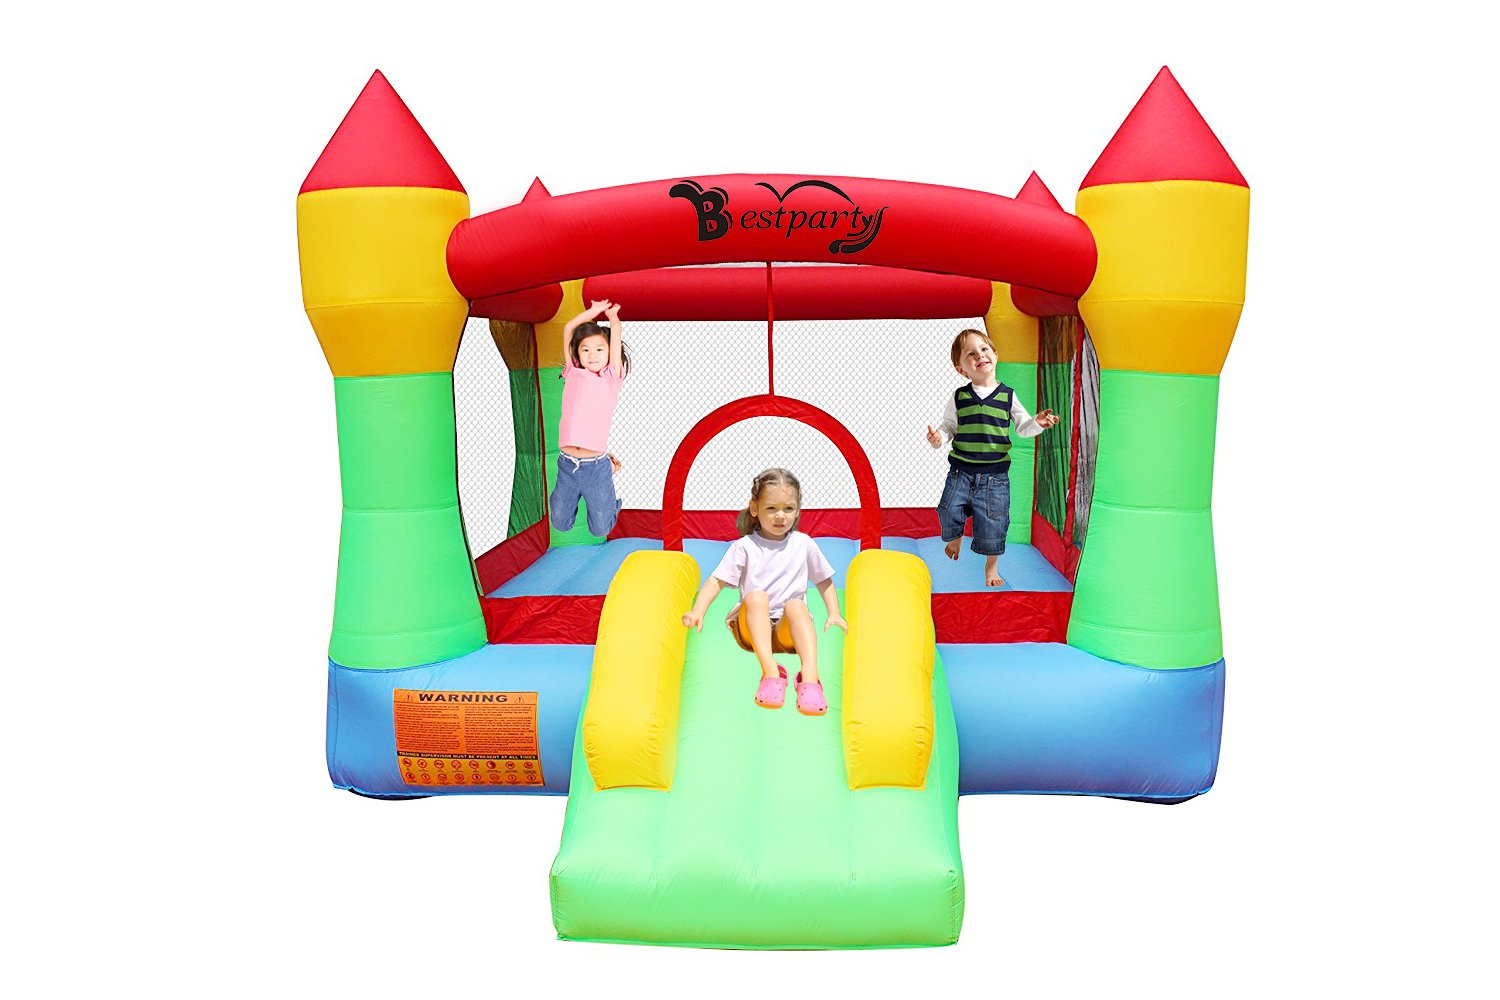 BestParty Inflatable Bounce House Castle Jumper Moonwalk Slide Inflatable Jumping Bouncy House with Blower by BestParty (Image #1)